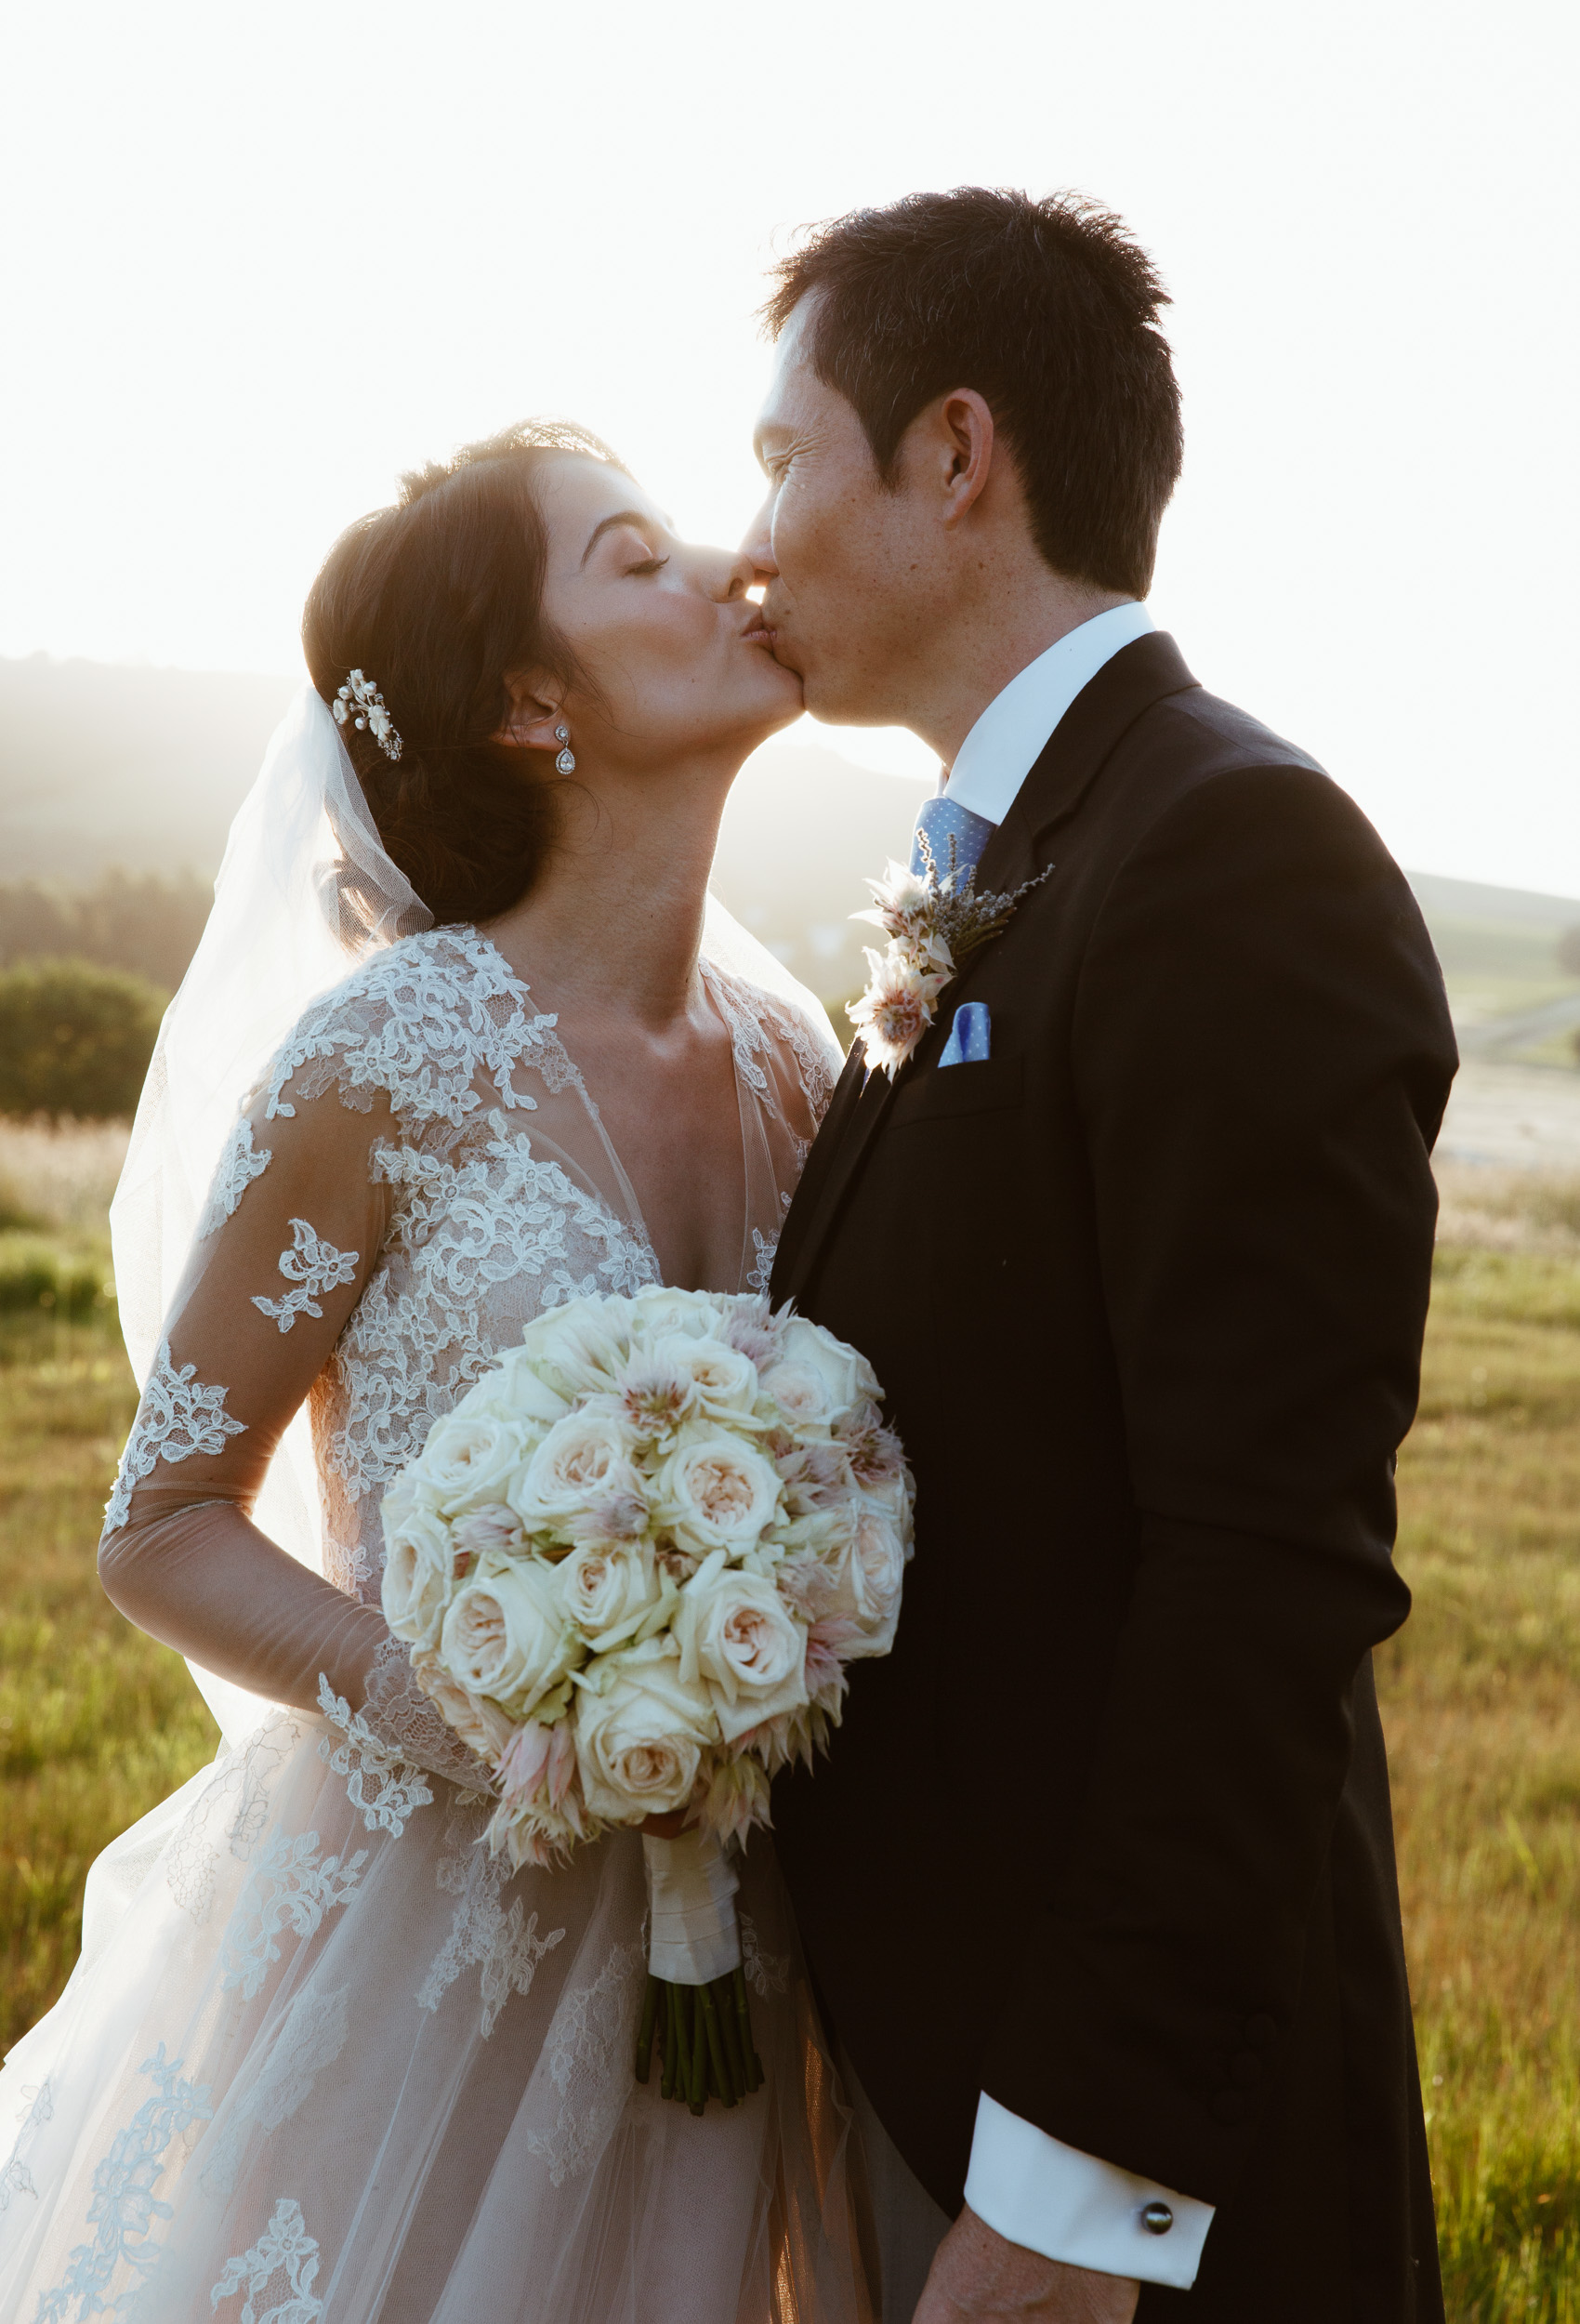 Jenny-Rockett-John-Scranton-Cape-Town-Wedding-Photographer-Andrea-Kellan-150.jpg